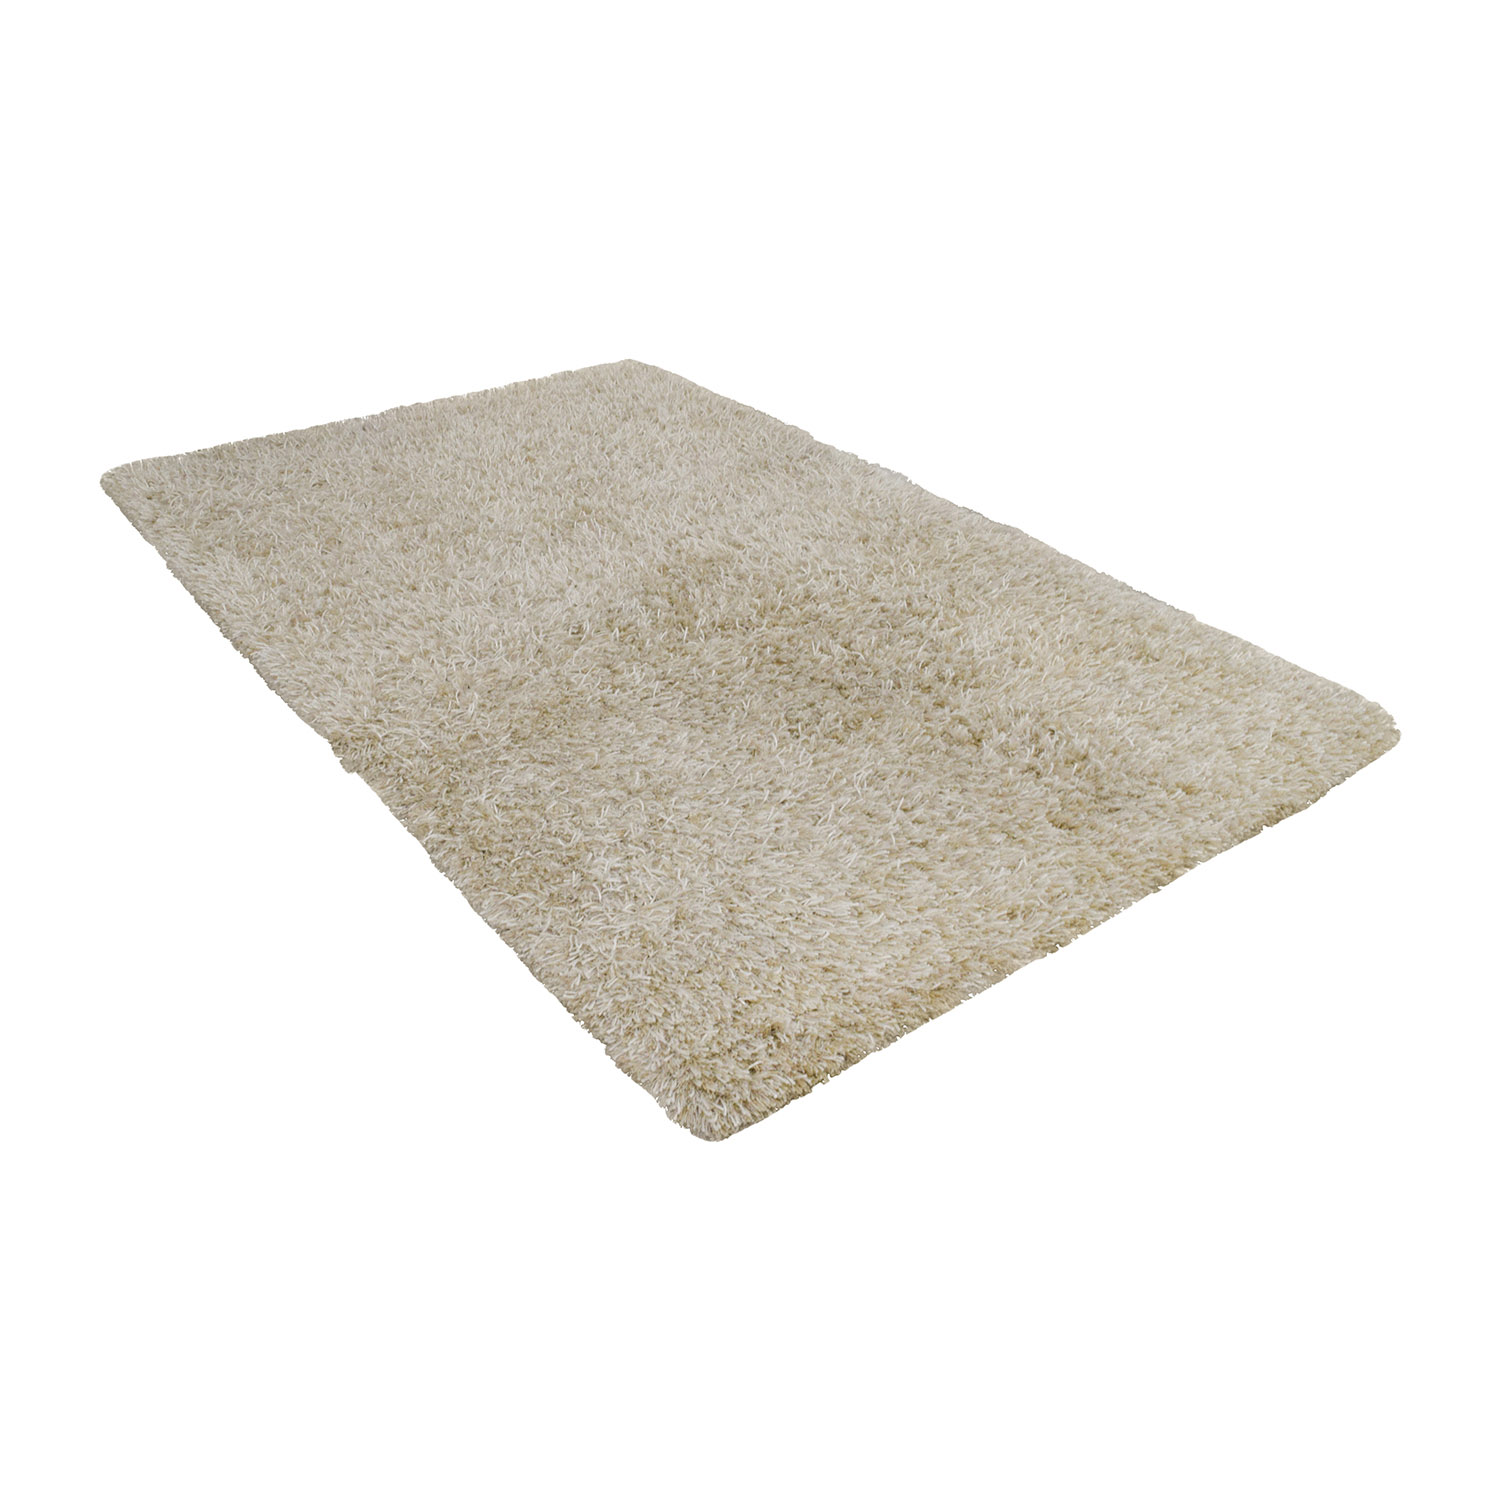 CB2 CB2 Drake Natural Shag Rug on sale